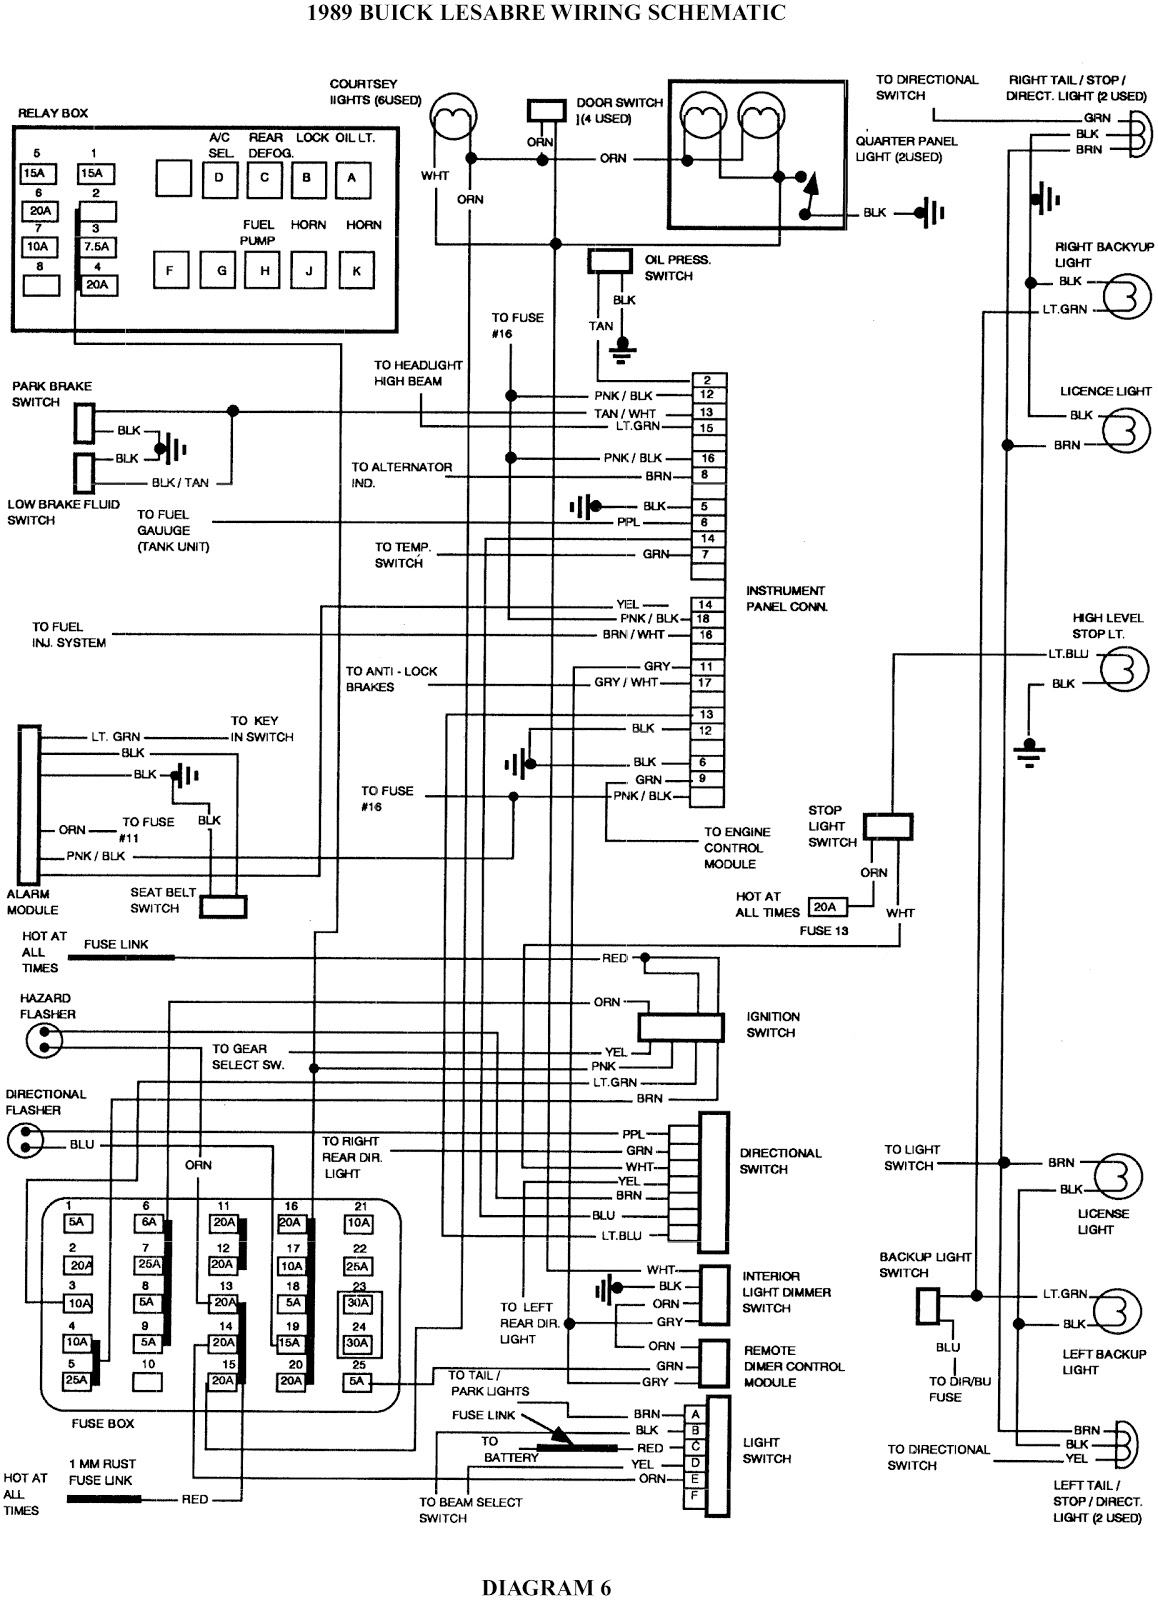 1989 buick lesabre wiring schematic schematic wiring 3 1 engine diagrams sensor locations 1990 lumina 3 1 engine diagram